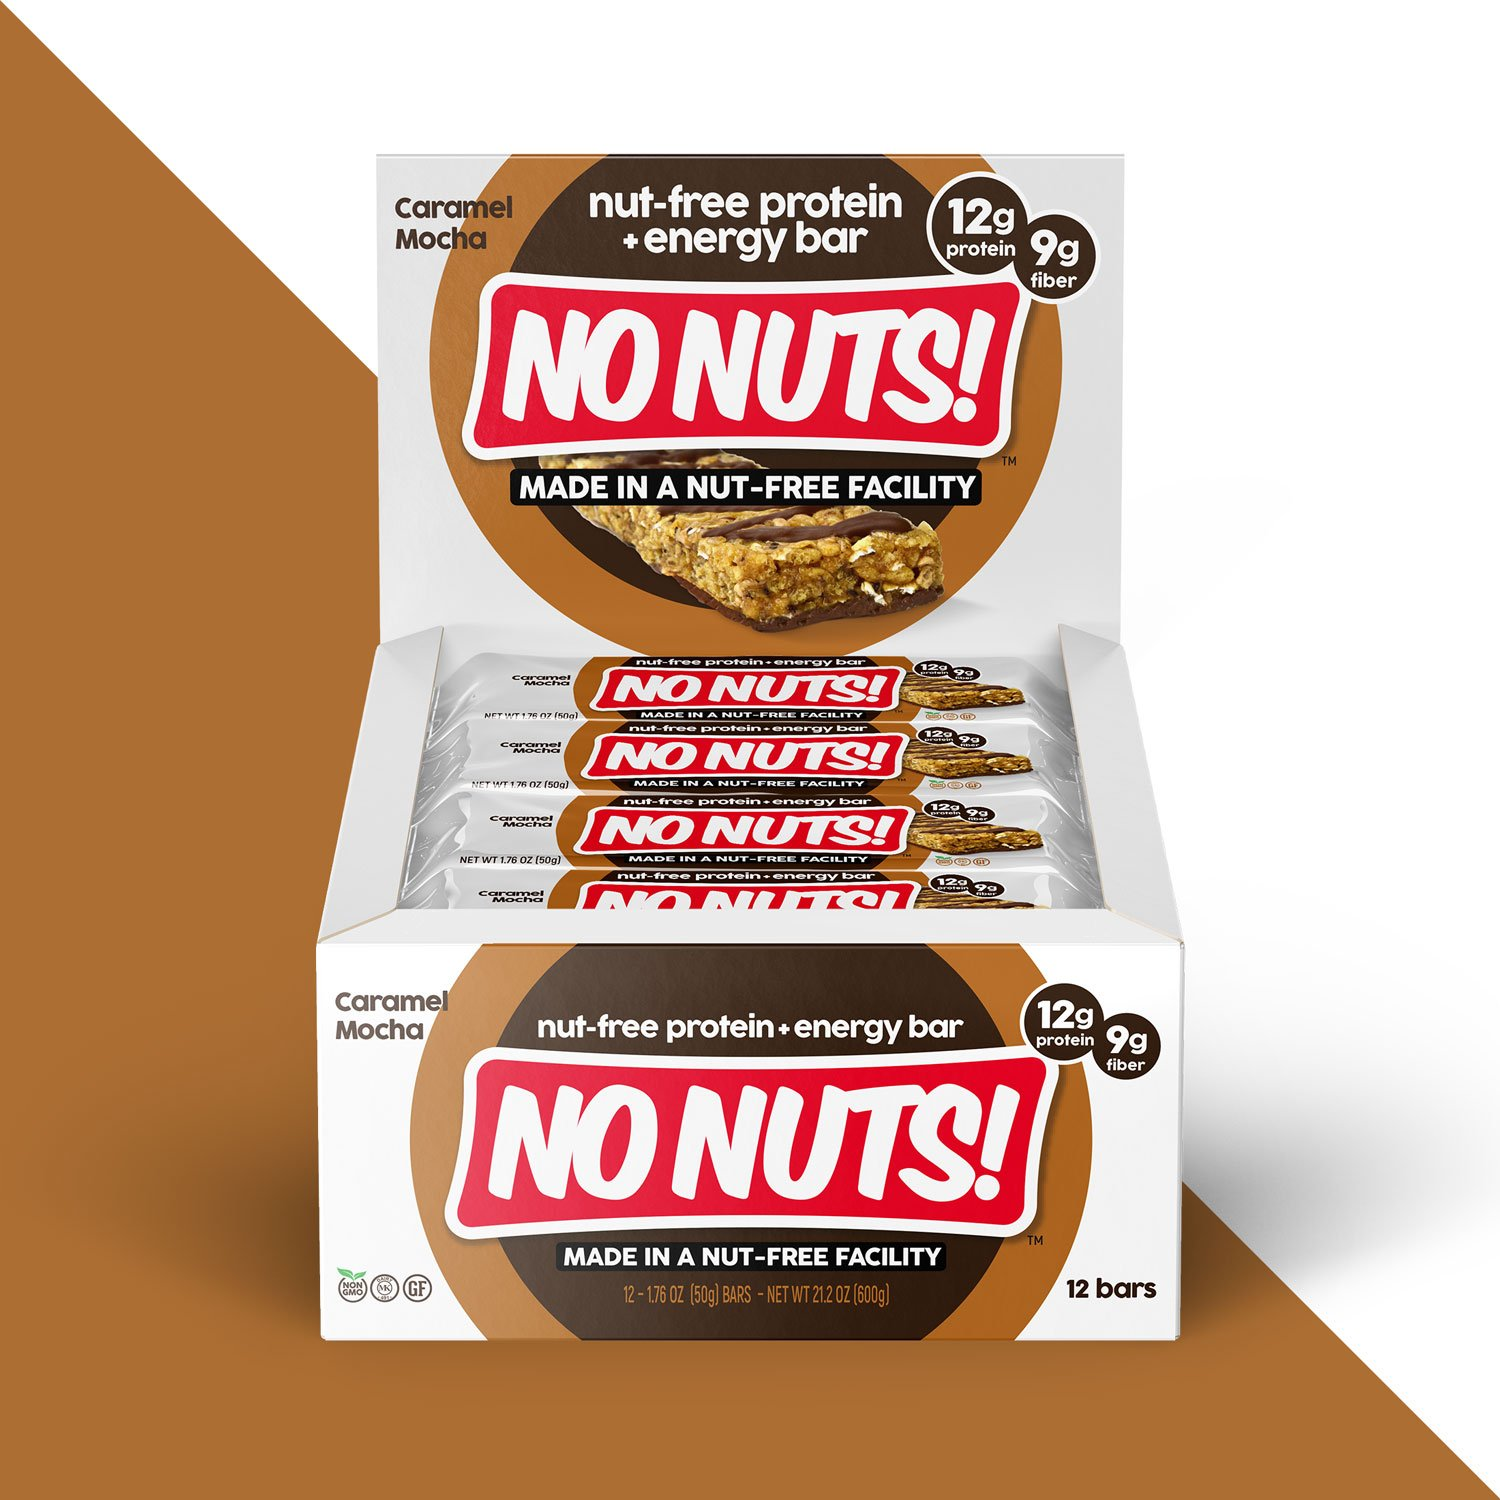 no-nuts-caramel-mocha-bar-packaging-carton_2048x2048